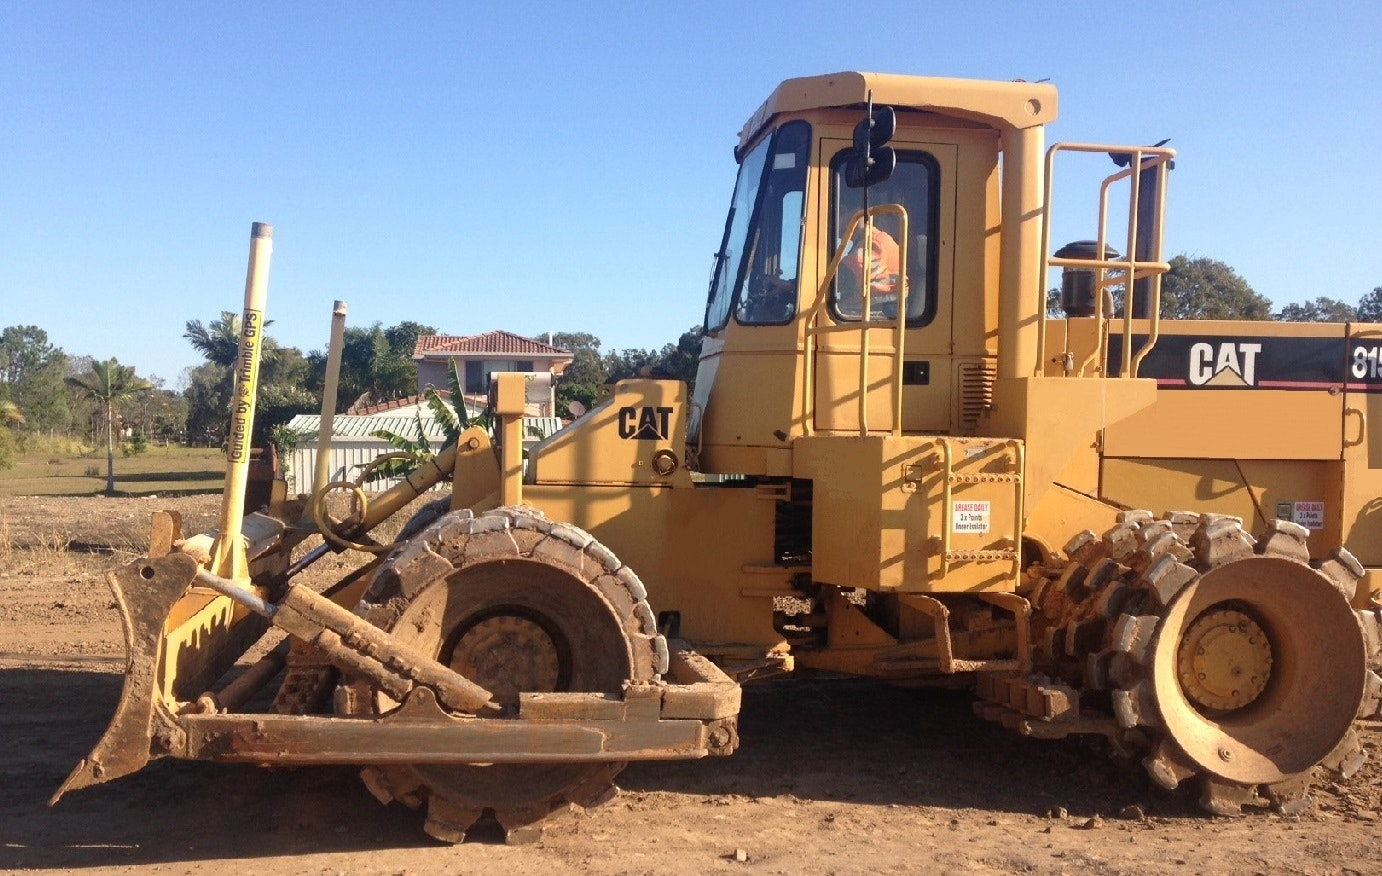 CAT 815 or Equivalent Compactor for hire - Thomas Kingsley Resources Pty Ltd